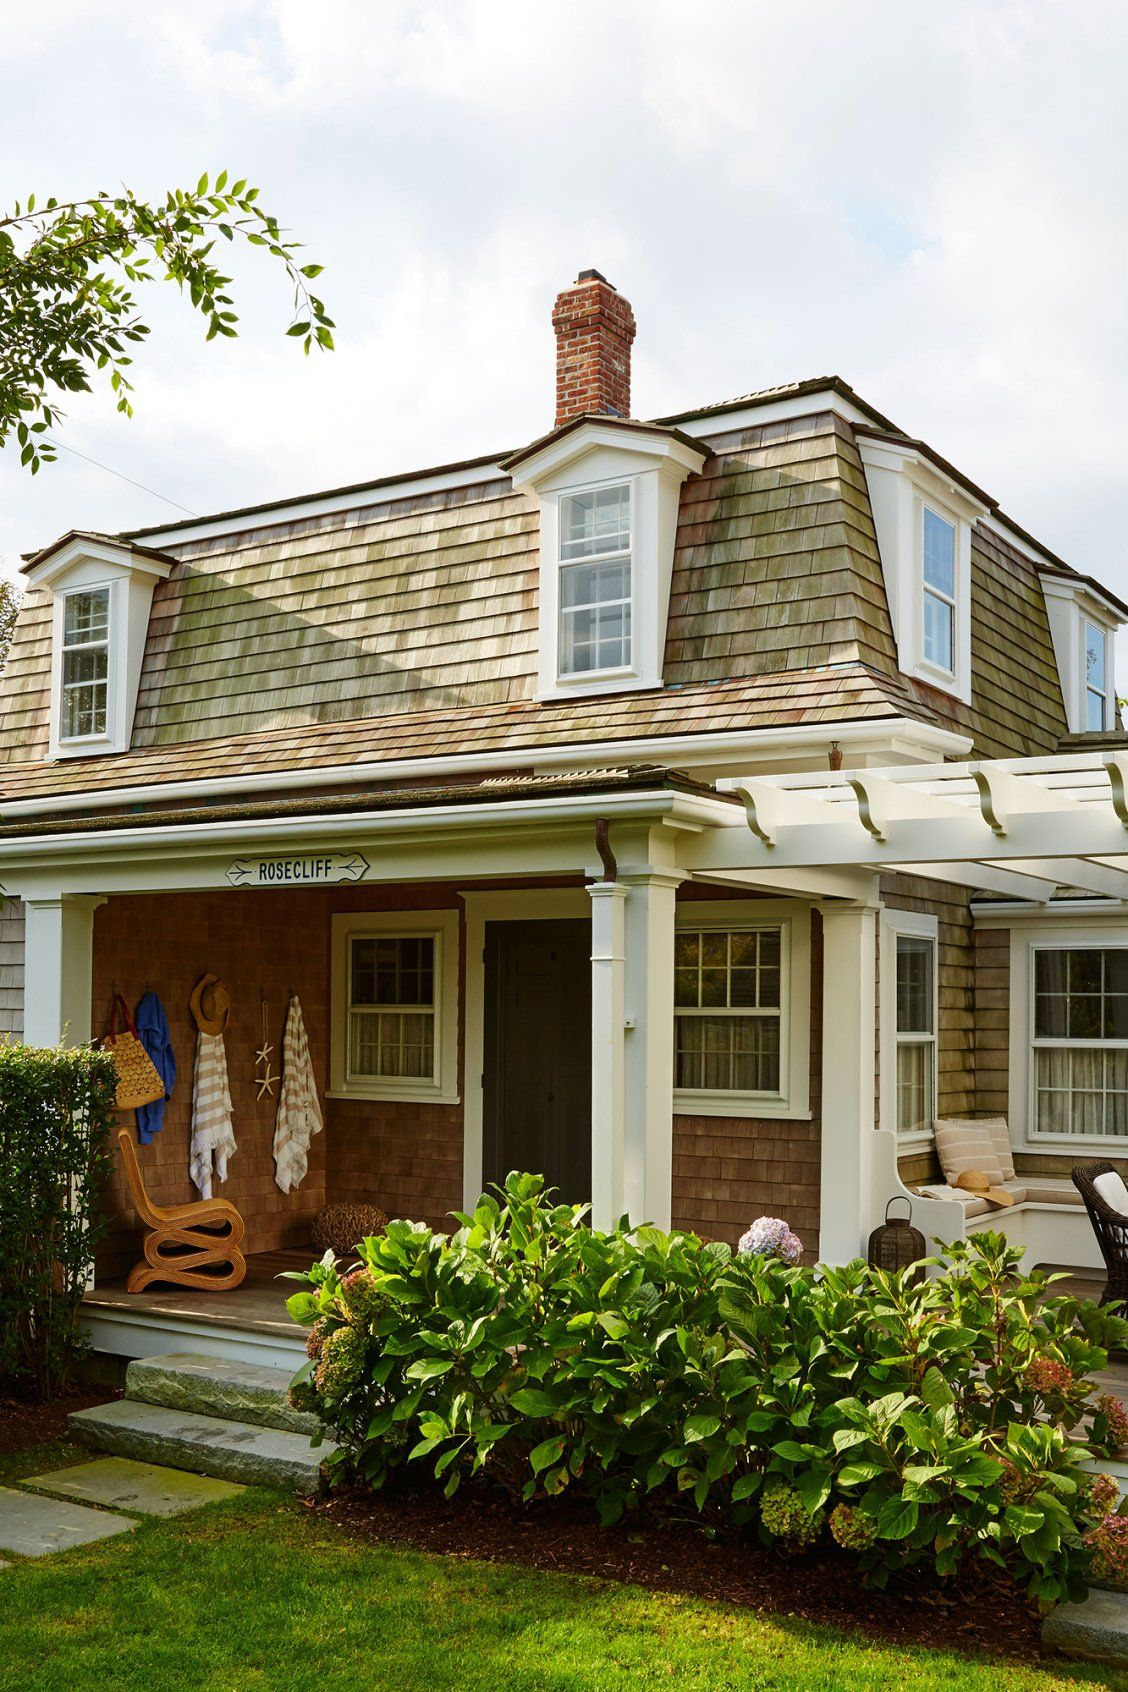 Step Inside This Nantucket Cottage For Loads Of Colorful Inspiration Nantucket Cottage Beach House Exterior Beach House Design